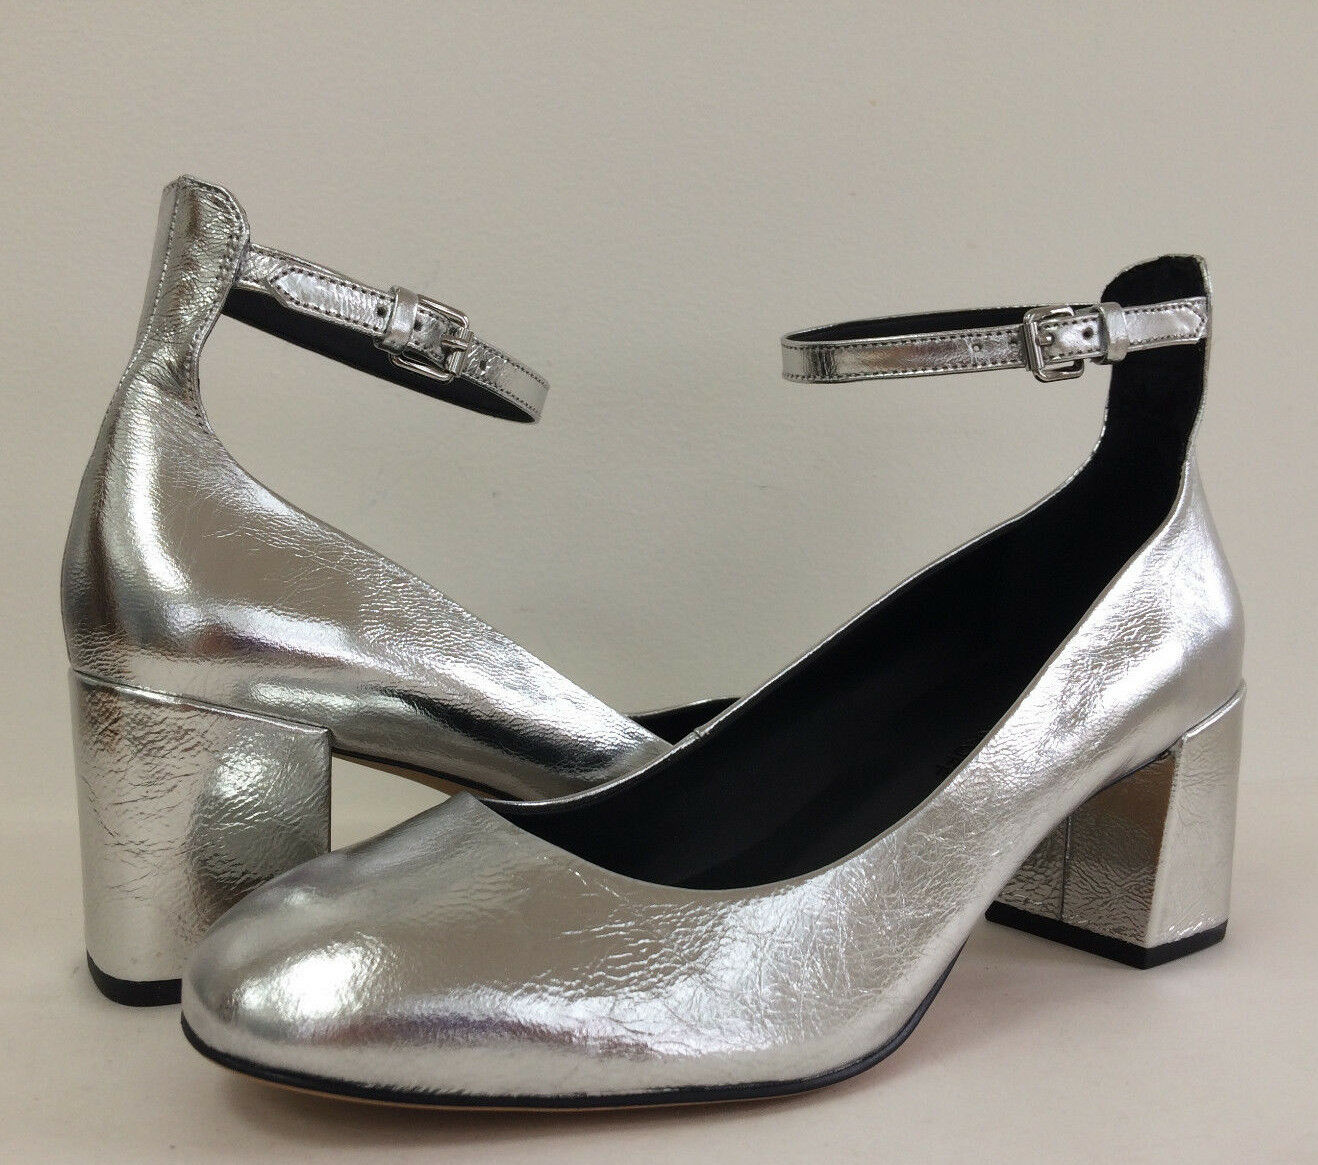 NEU Rebecca Minkoff Bridget Distressed Metallic Mary Janes Ankle Strap Sz 8 8.5